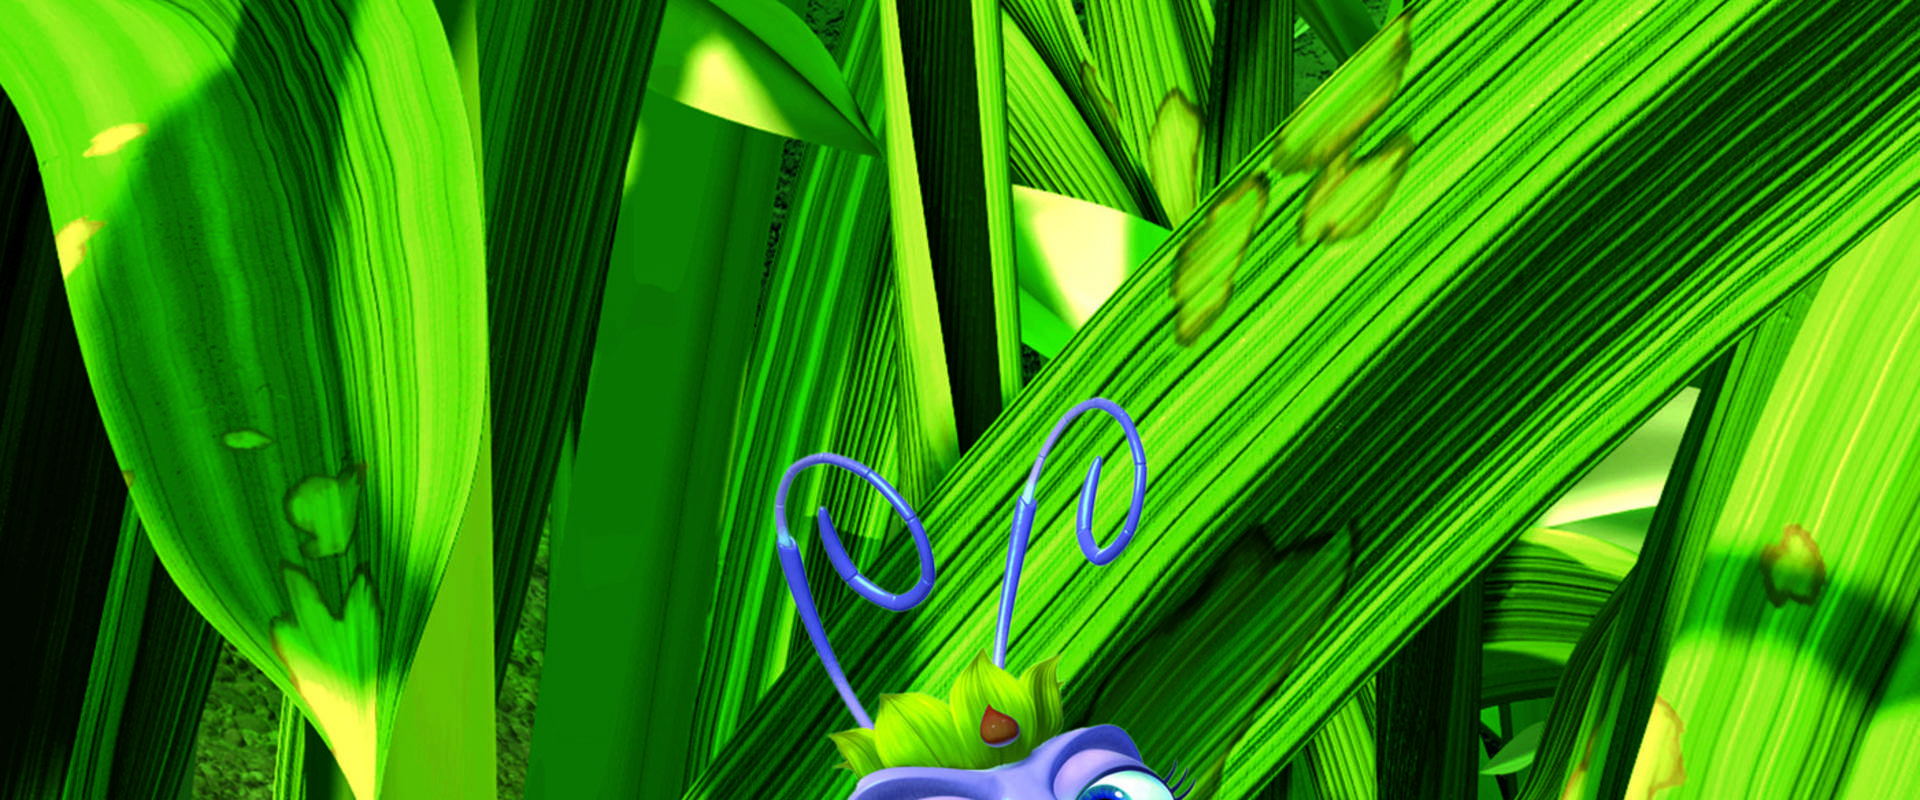 A Bug's Life background 2